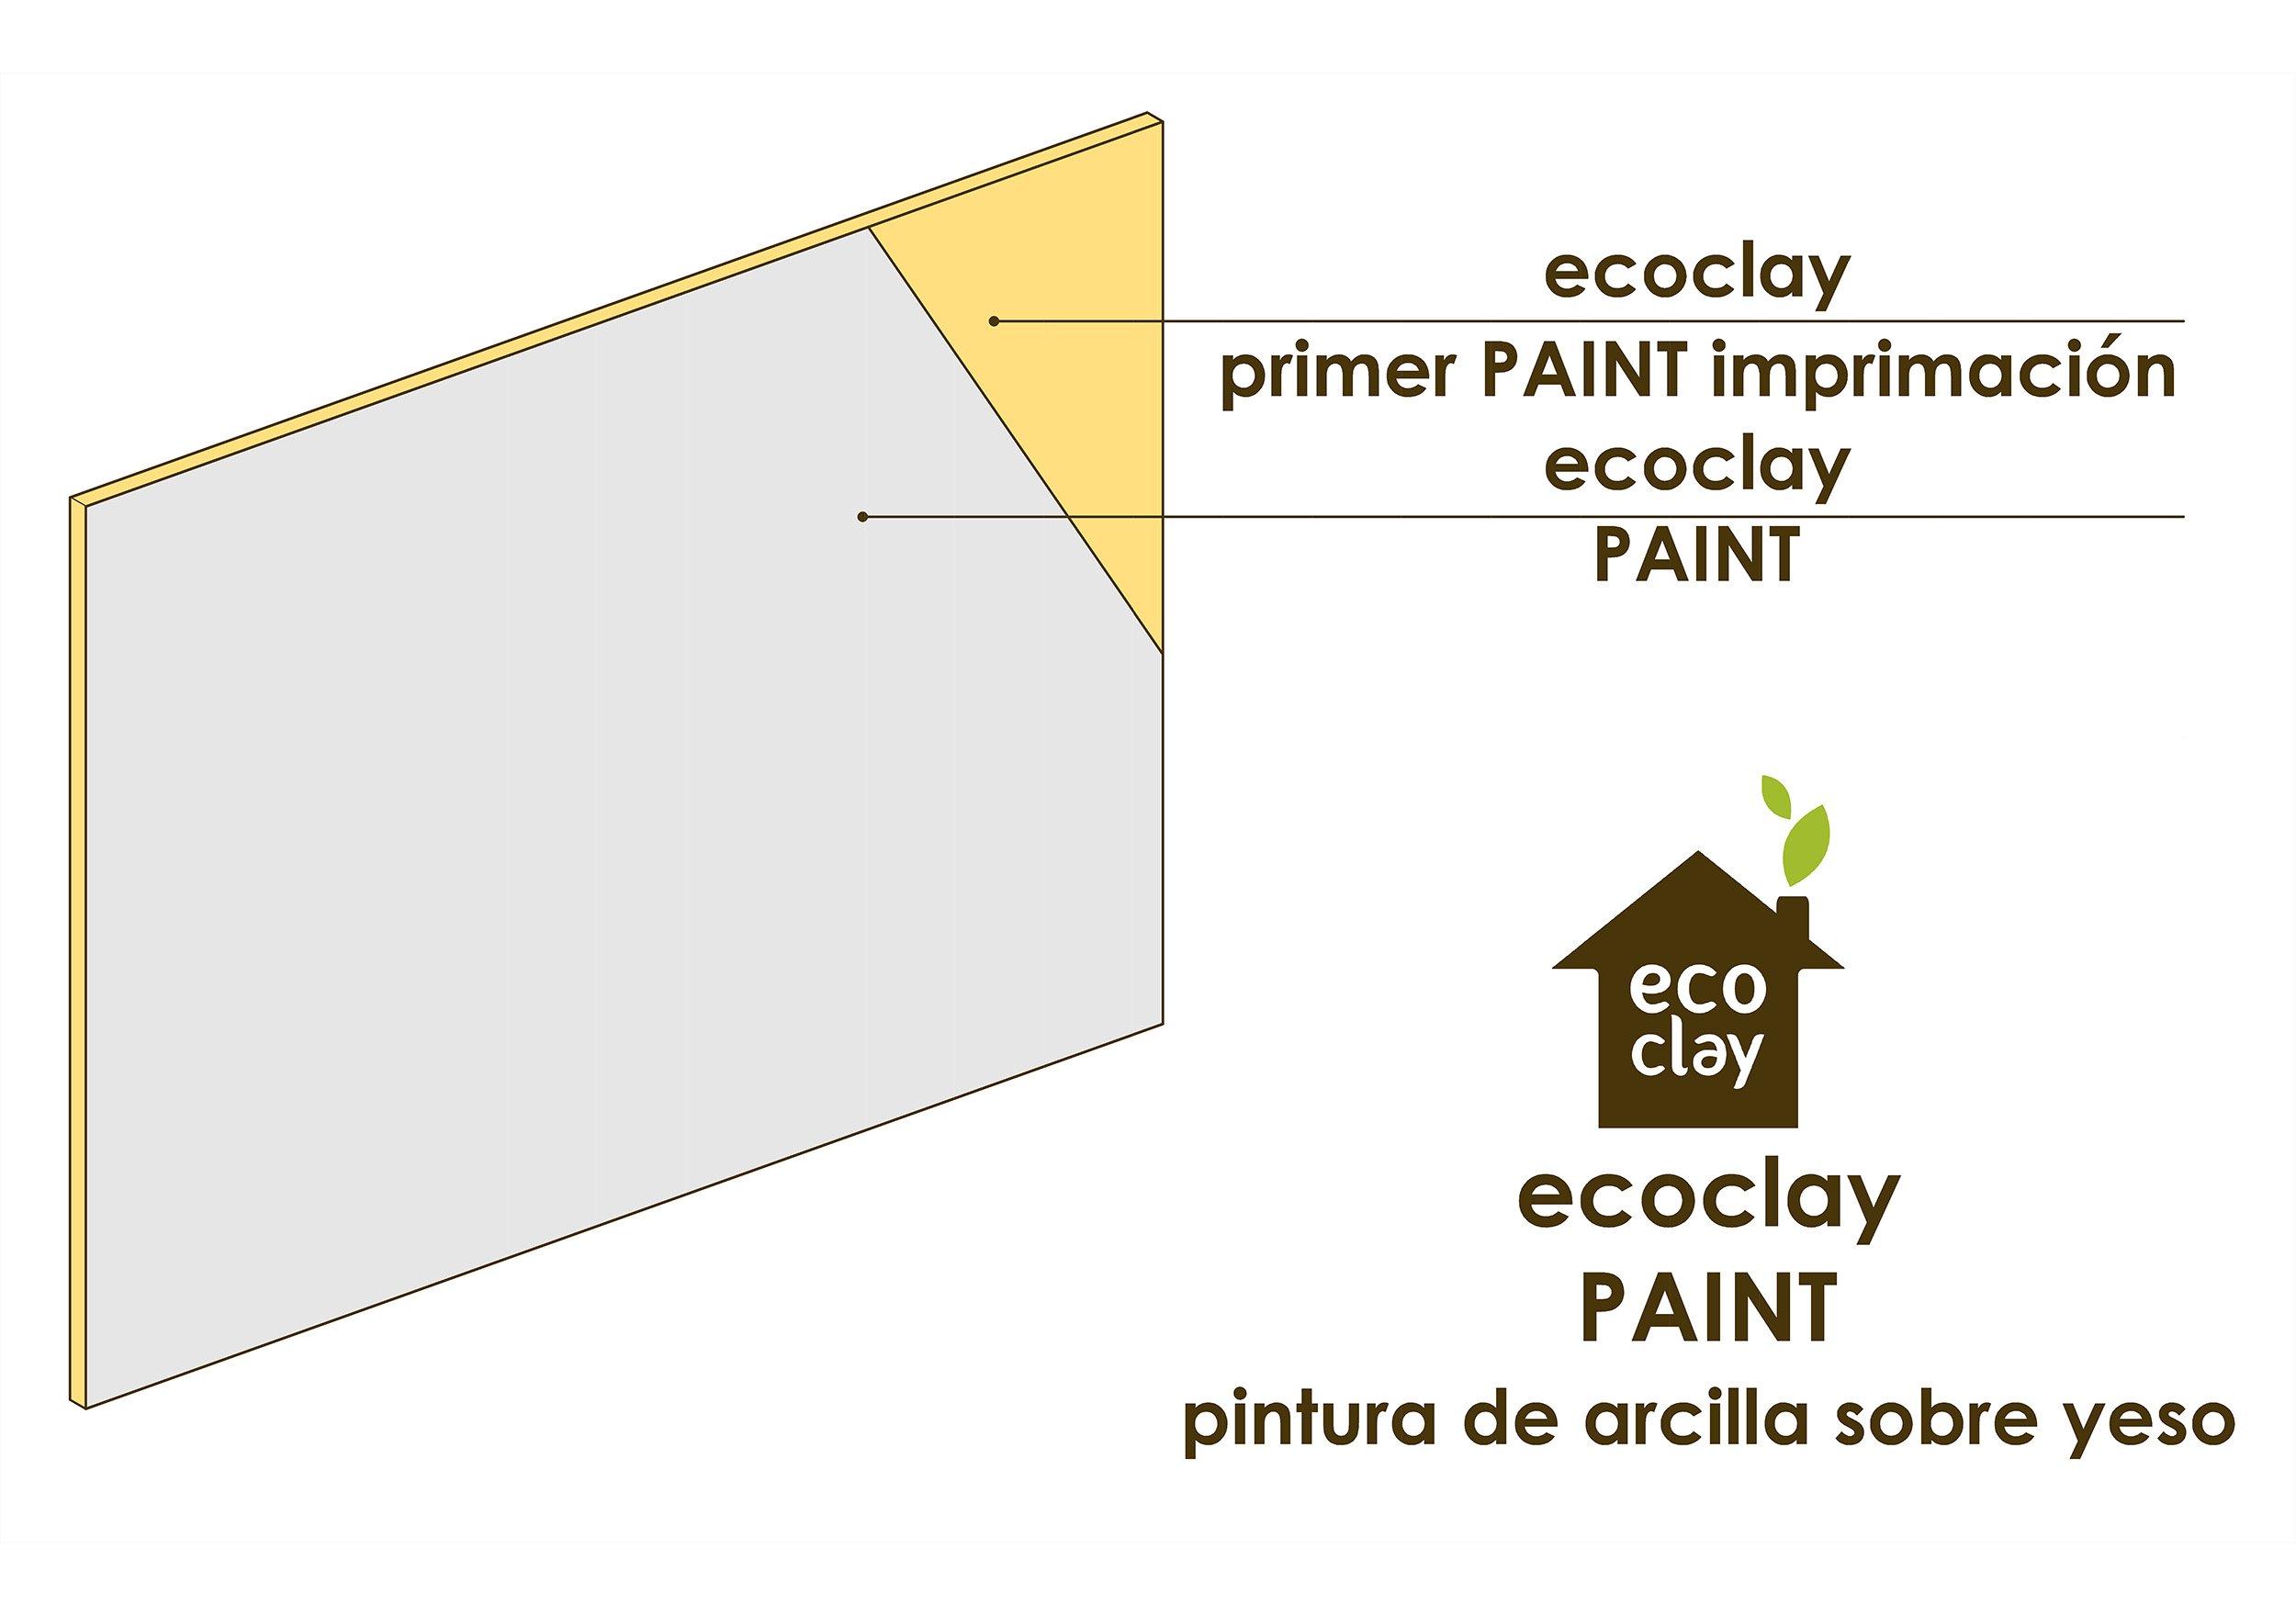 ecoclay PAINT, sobre yeso